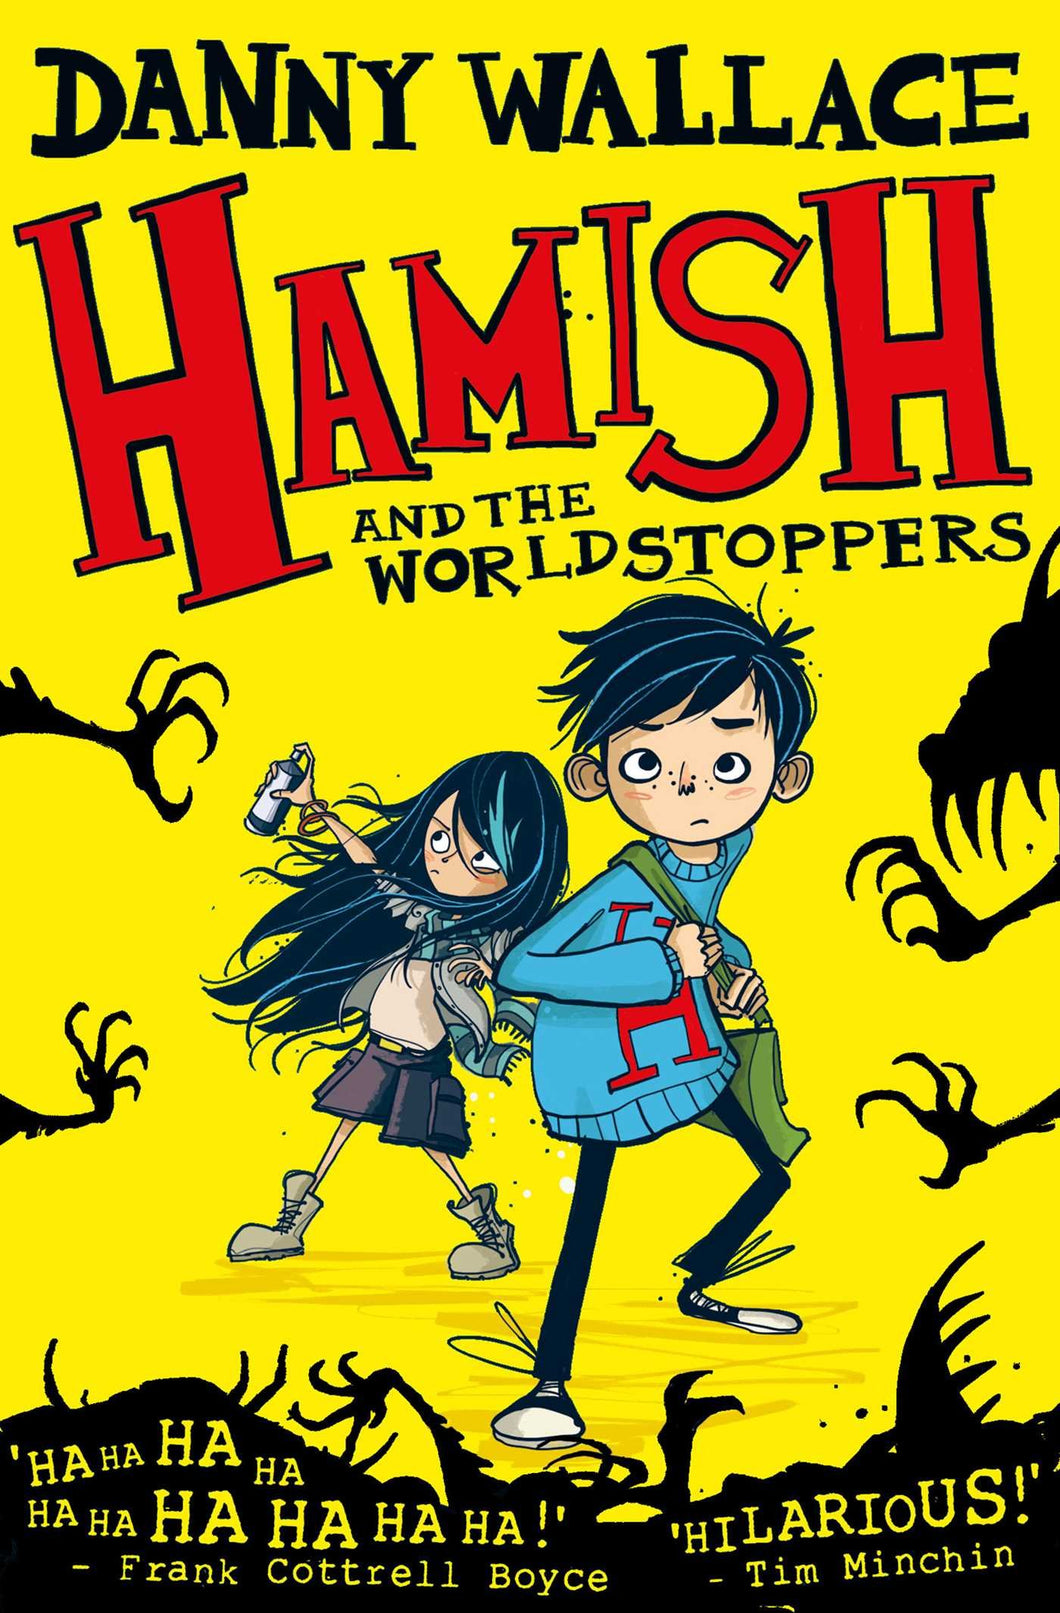 Hamish and the Worldstoppers (#1)